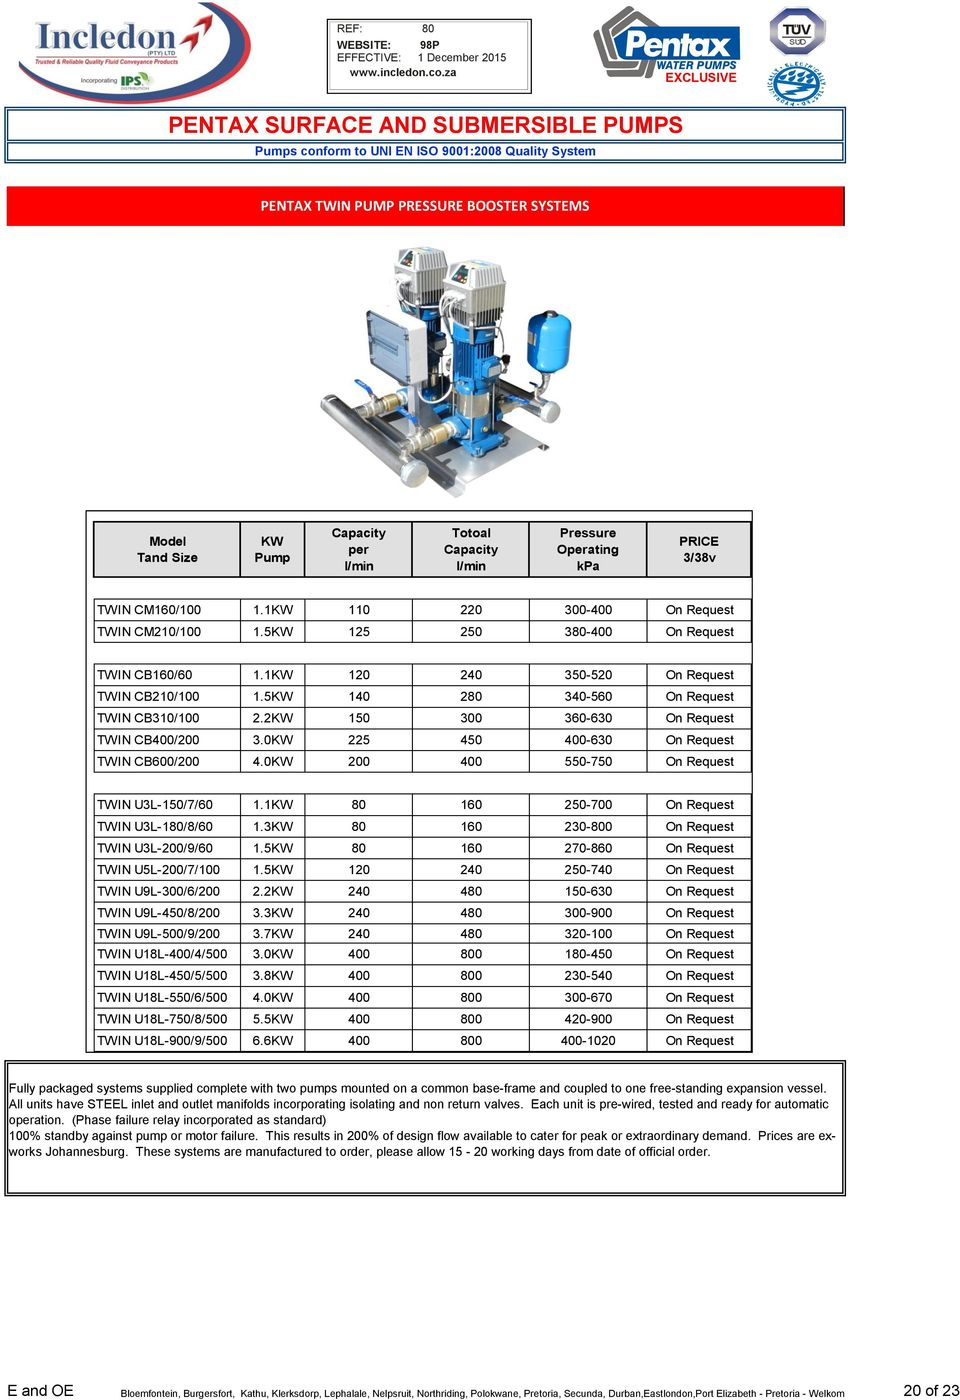 pentax surface and submersible pumps pdf 2kw 15 3 36 63 on request twin cb 2 3 kw 225